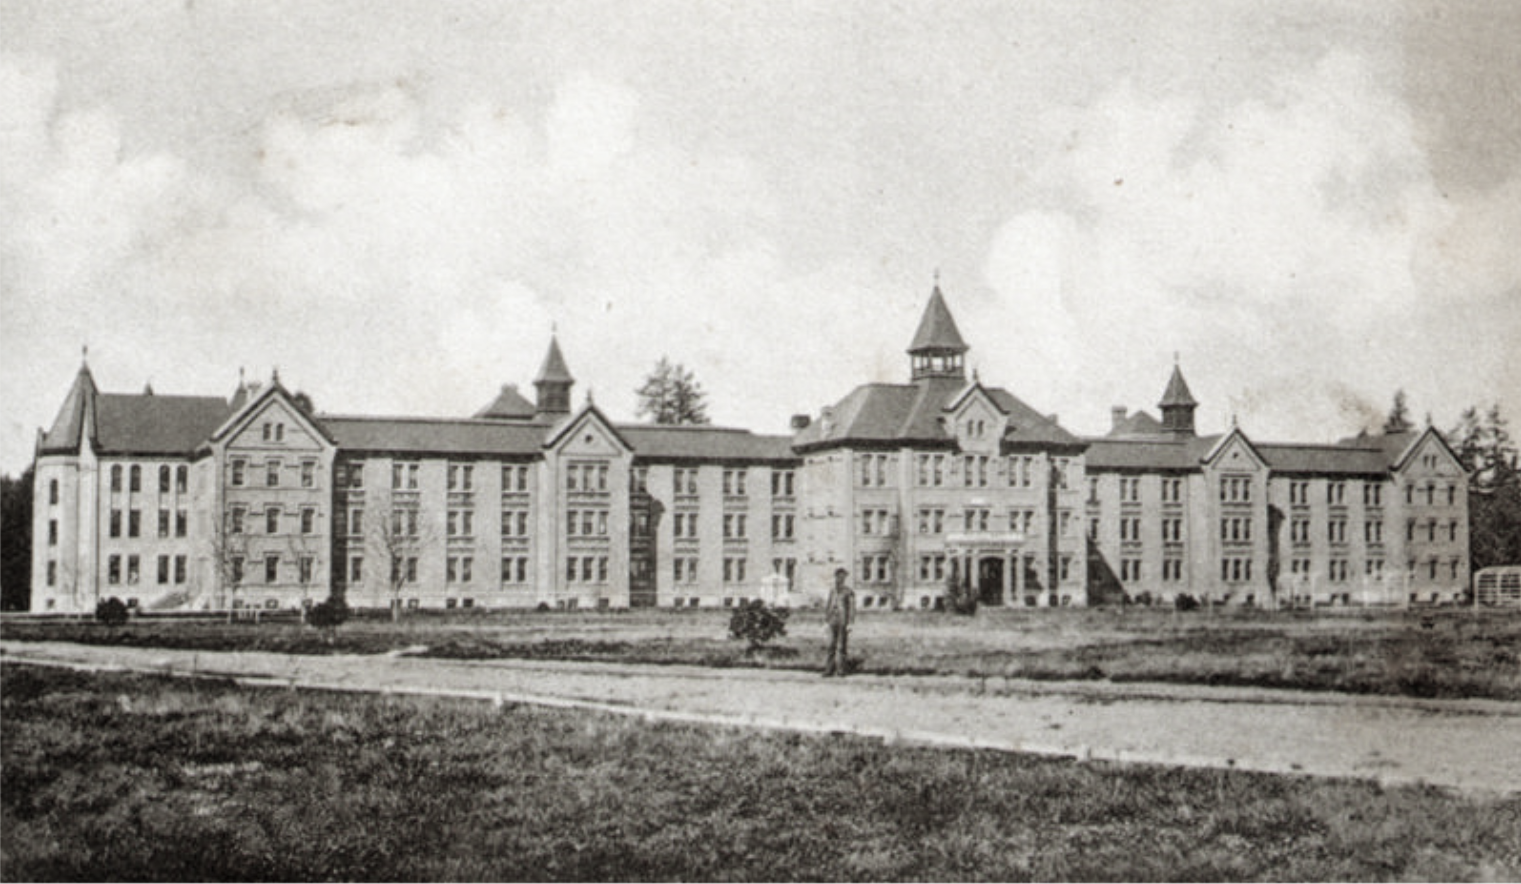 Western State Hospital (Washington) - Wikipedia